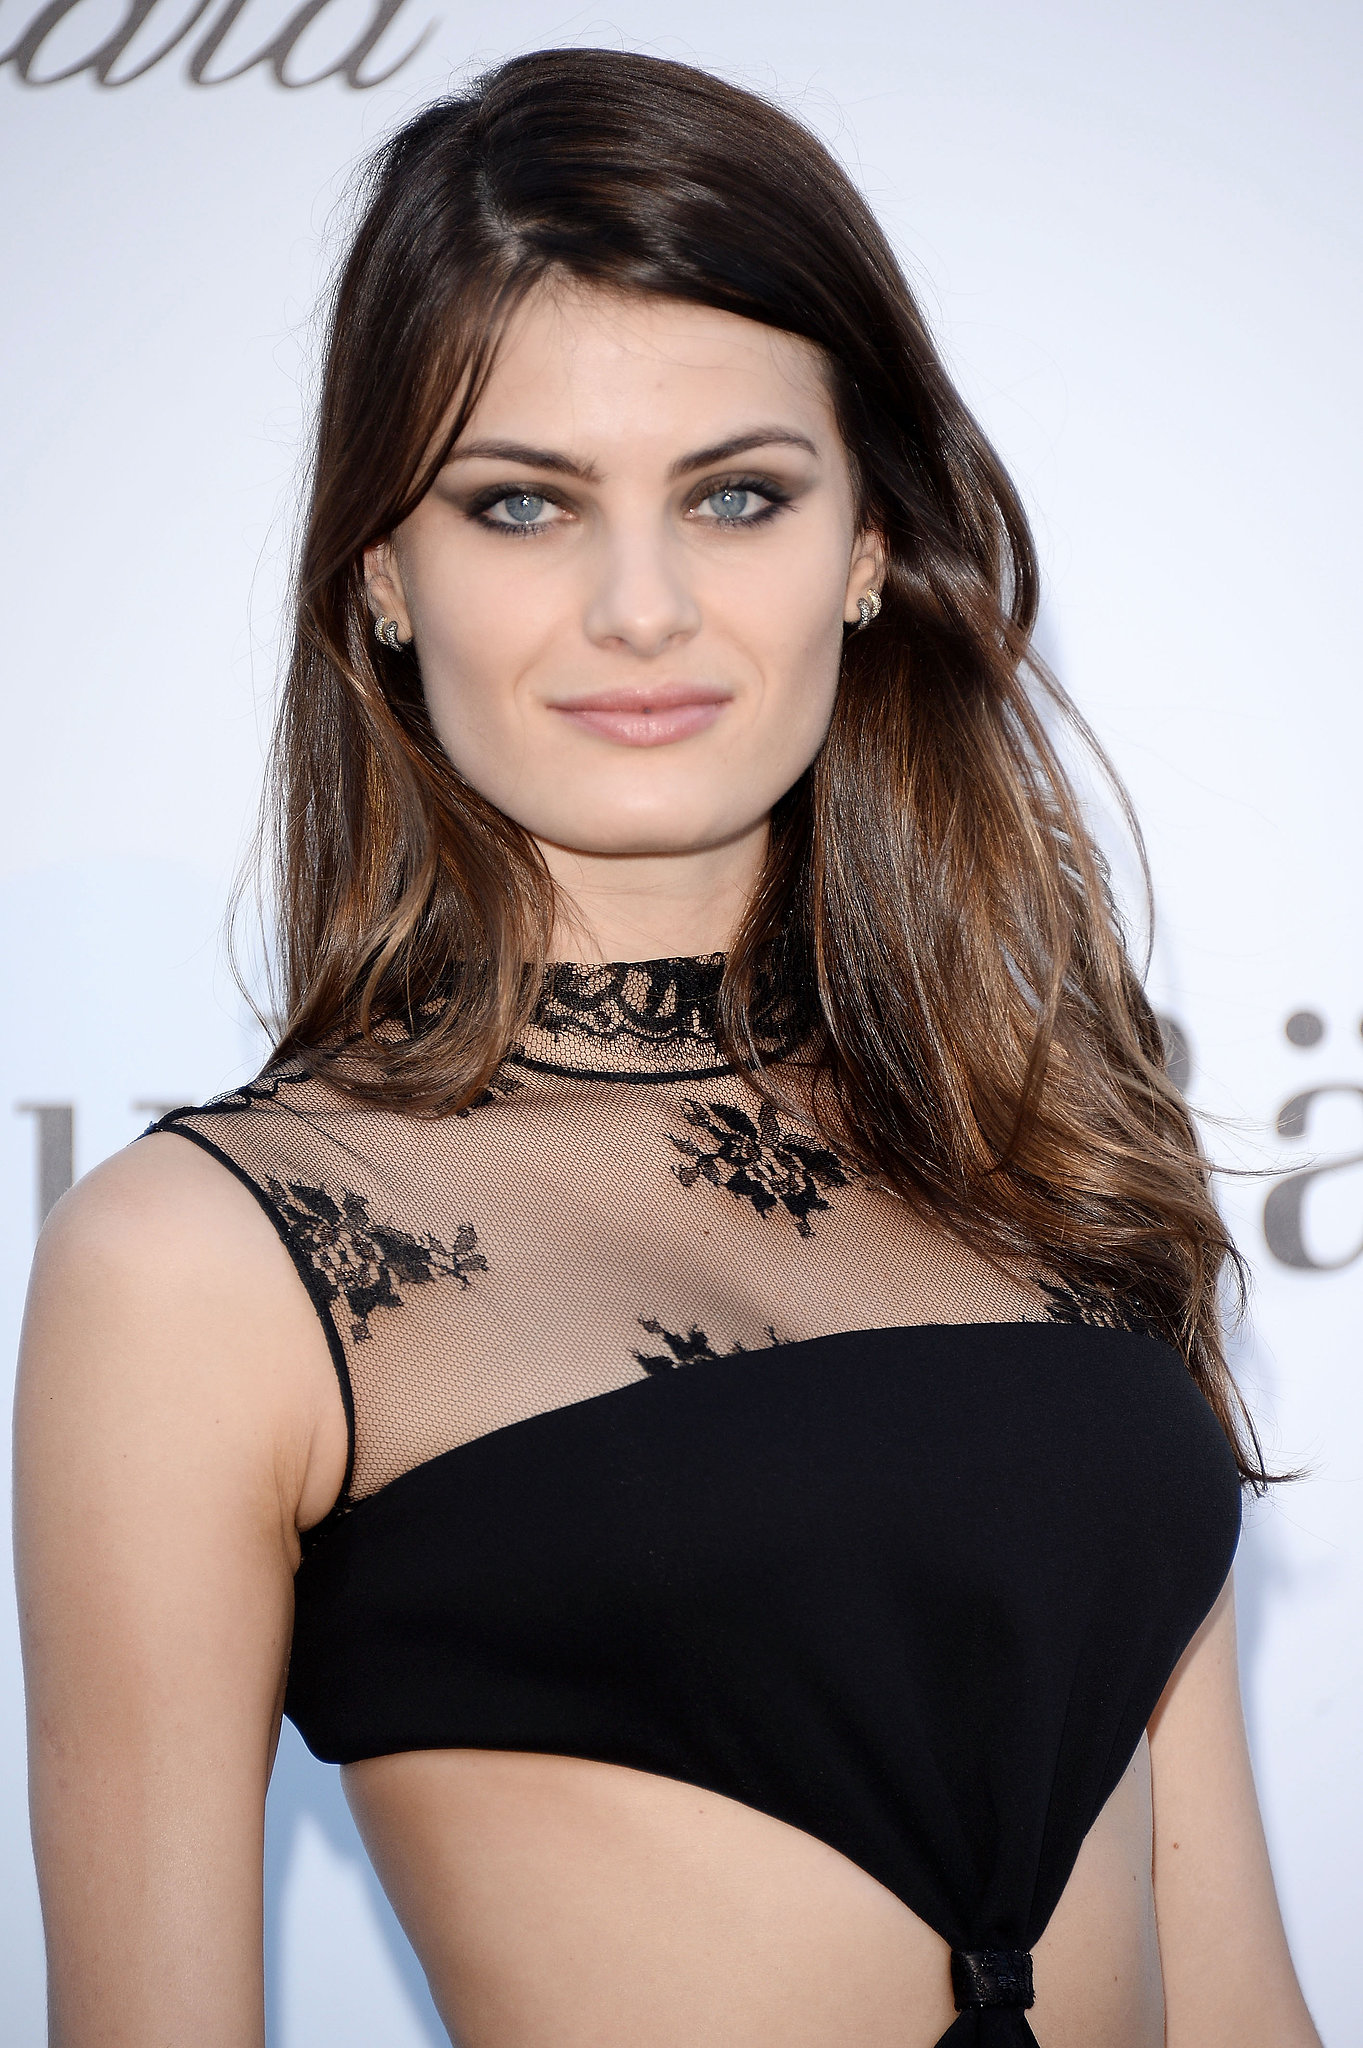 Isabeli Fontana earned a  million dollar salary, leaving the net worth at 8 million in 2017